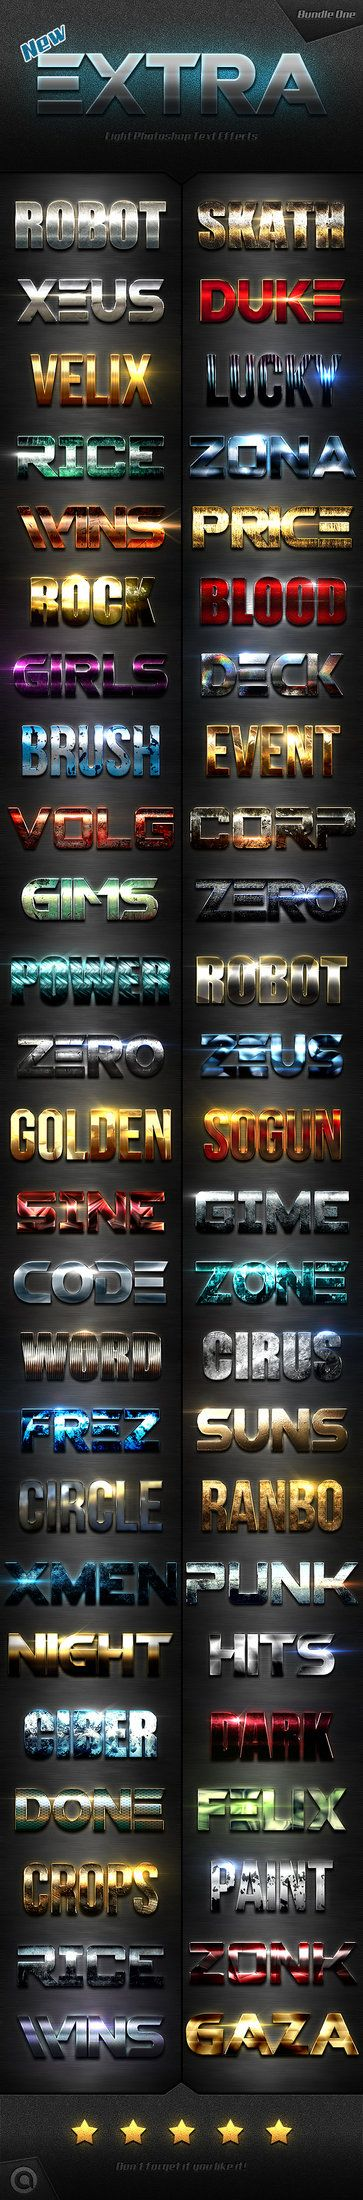 Download gooieildonew extra light text effects bundle one new extra light text effects bundle two this is a premium adobe photoshop layer styles in this set includes source baditri Images